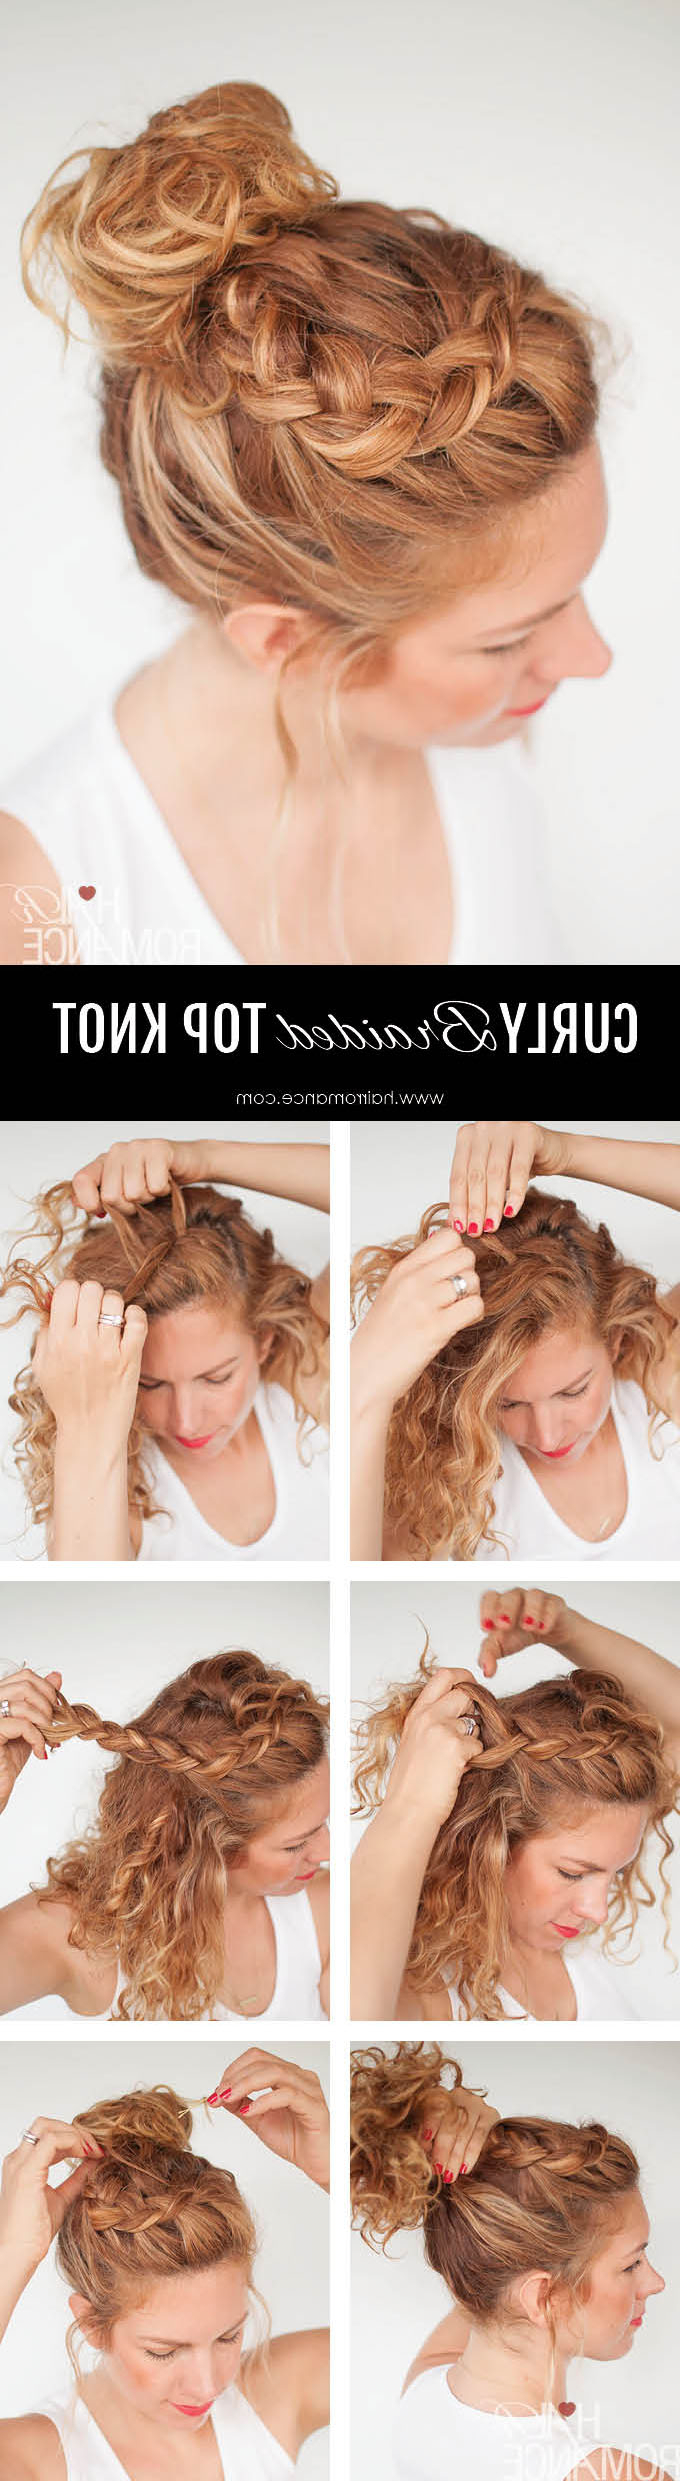 Everyday Curly Hairstyles – Curly Braided Top Knot Hairstyle For Current Topknot Ponytail Braided Hairstyles (Gallery 15 of 20)